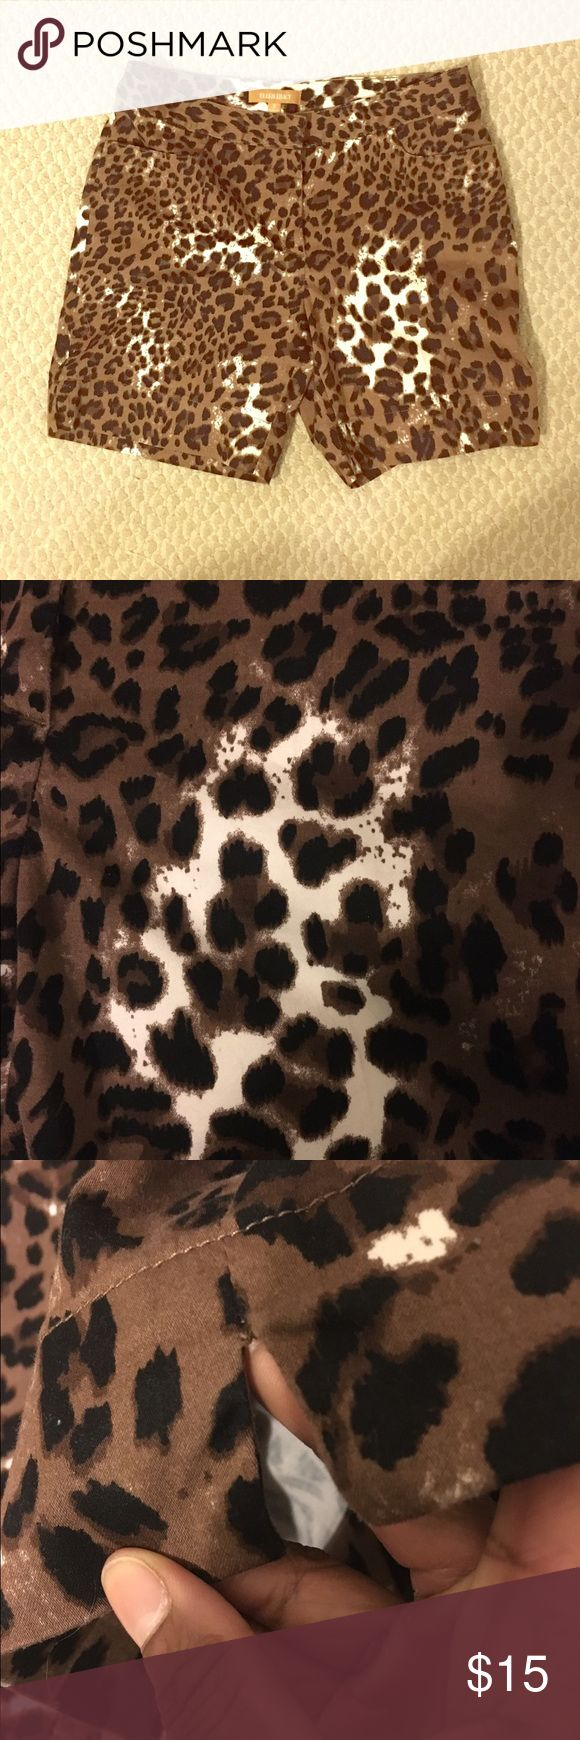 Ellen Tracy animal print cotton shorts These shorts can be paired with just about any solid color shirt! The length measures 15.5 inches waist is 32 inches Ellen Tracy Shorts